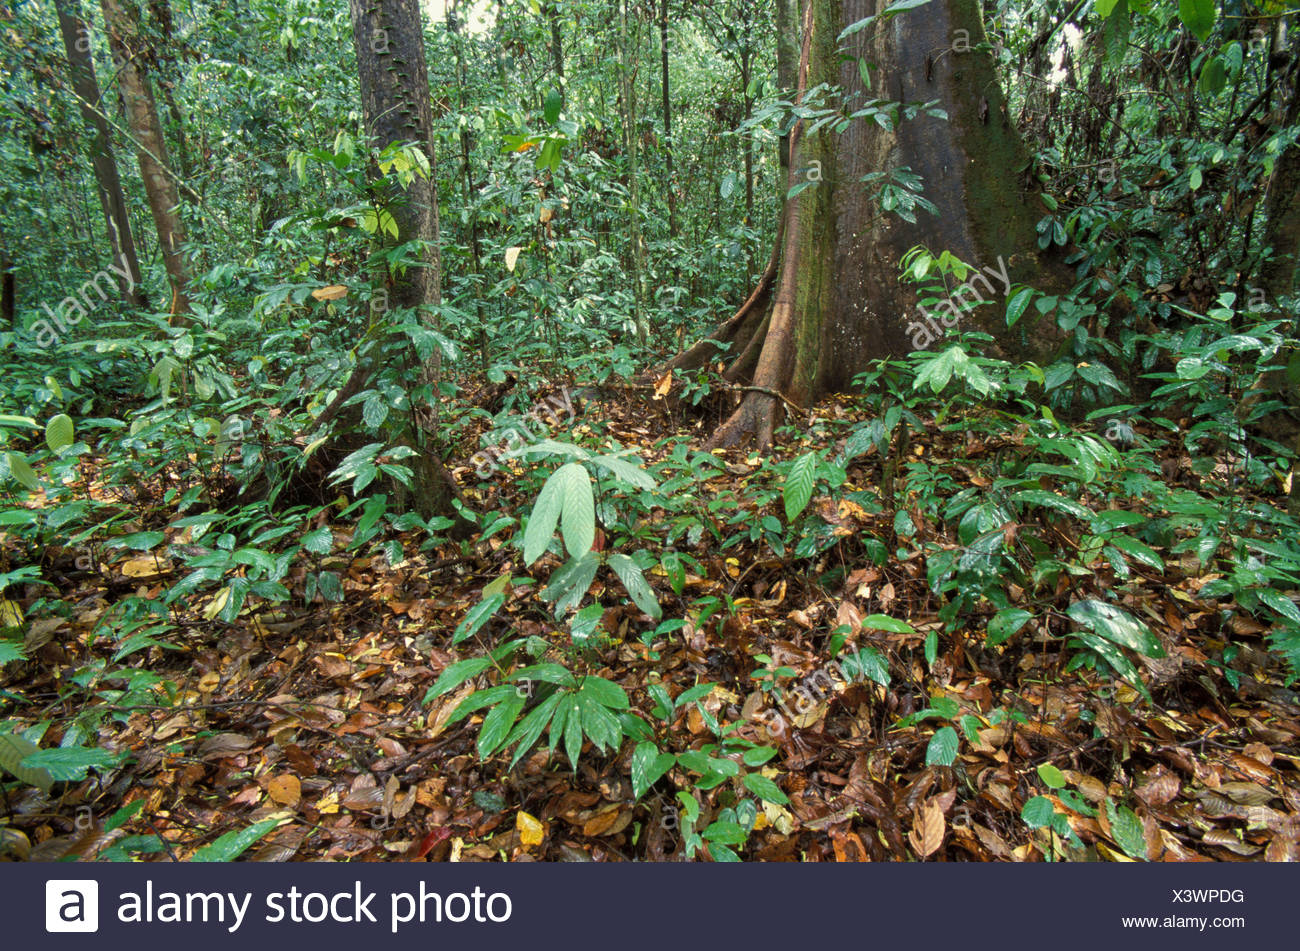 Primary Rainforest, Danum Valley, Sabah, low vegetation, undergrowth and forest floor, wide angle - Stock Image